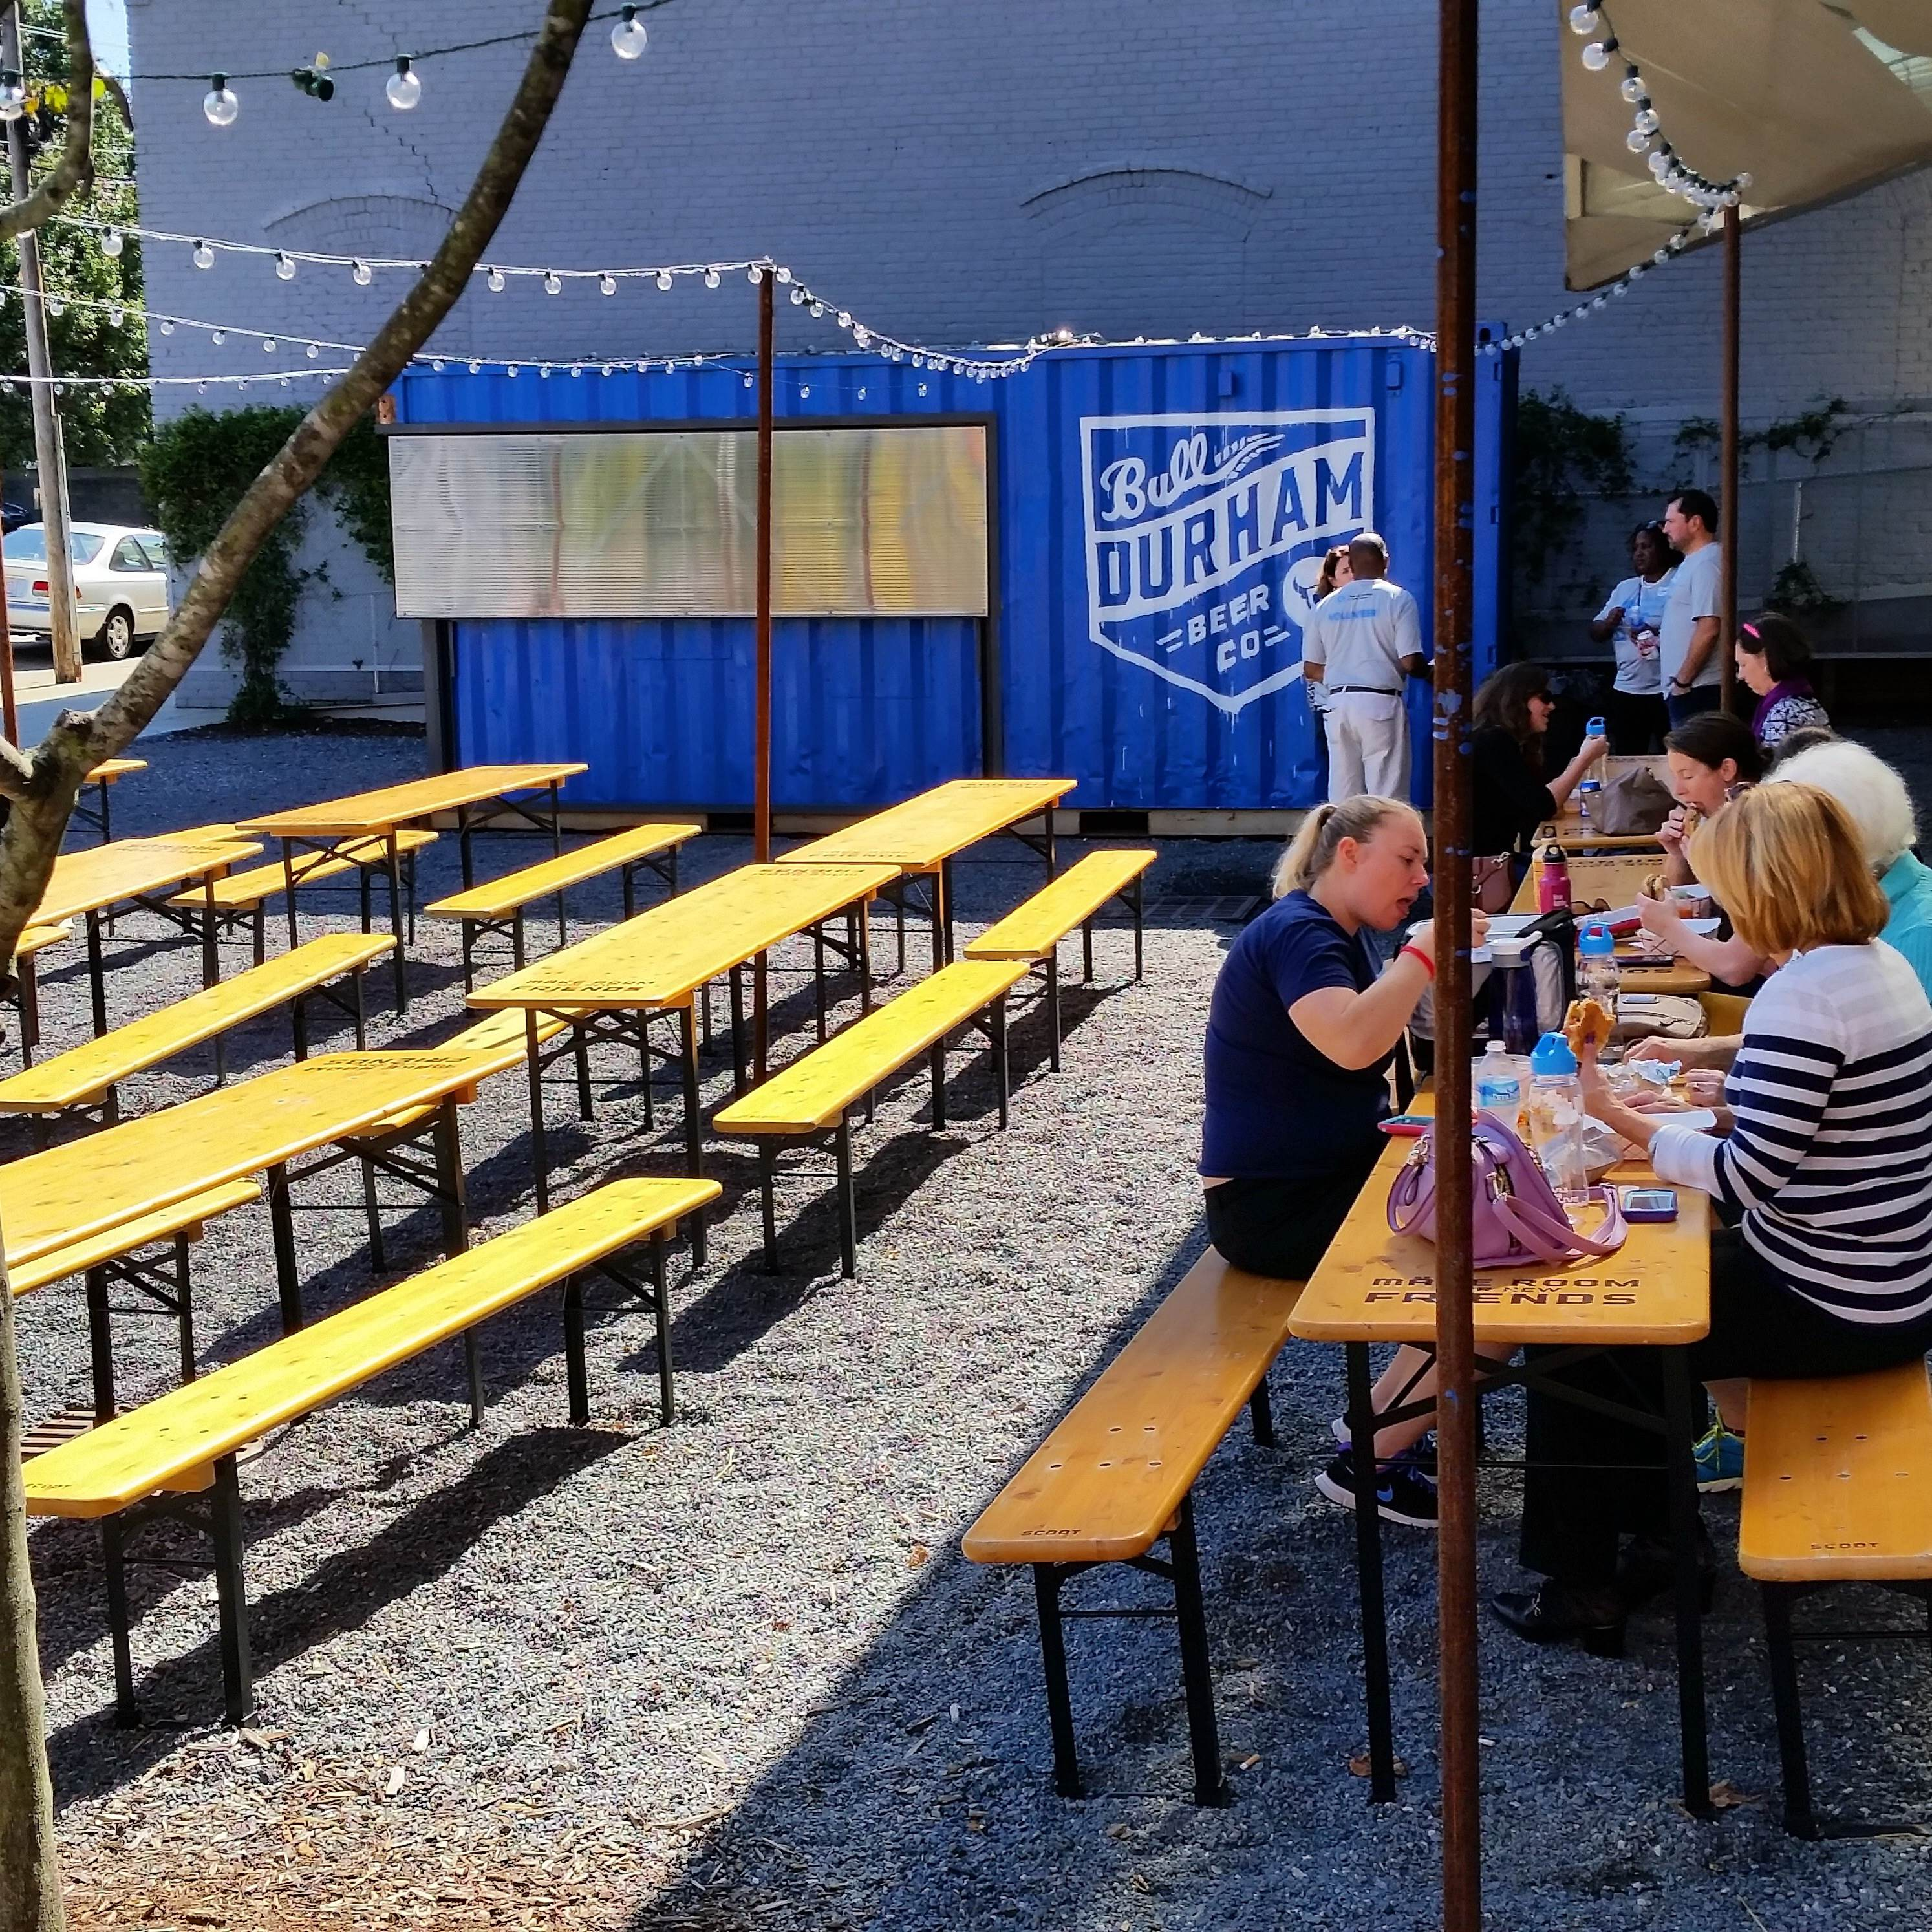 this past week i learned it has been reincarnated as the bull durham beer company beer garden - Raleigh Beer Garden